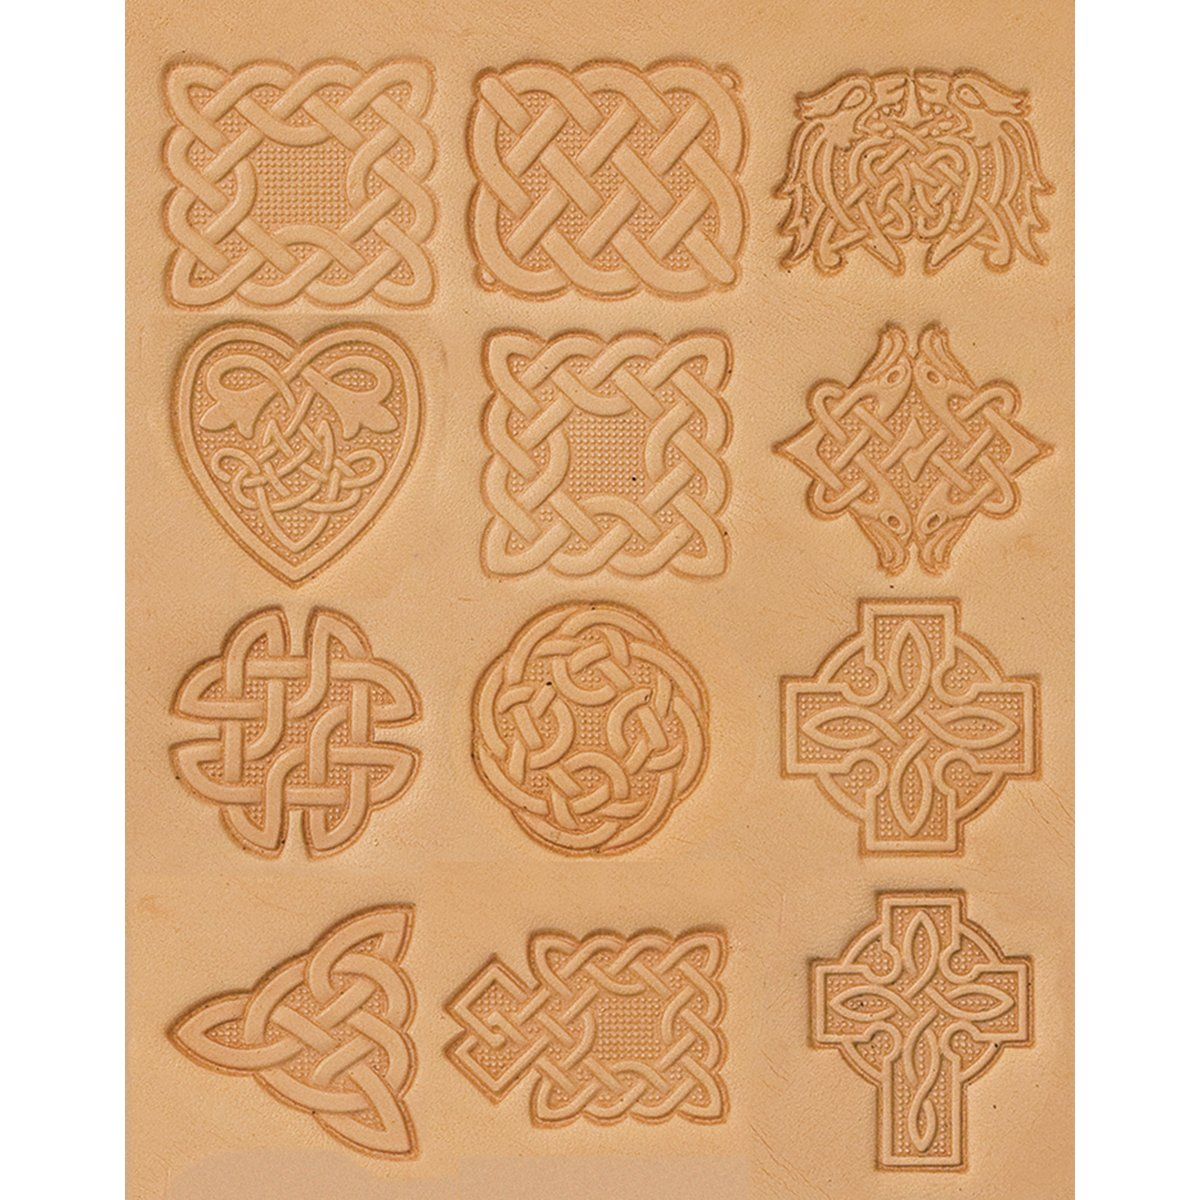 Tandy Leather Craftool Celtic 3-D Stamp Set 8161-00 by Tandy Leather Factory